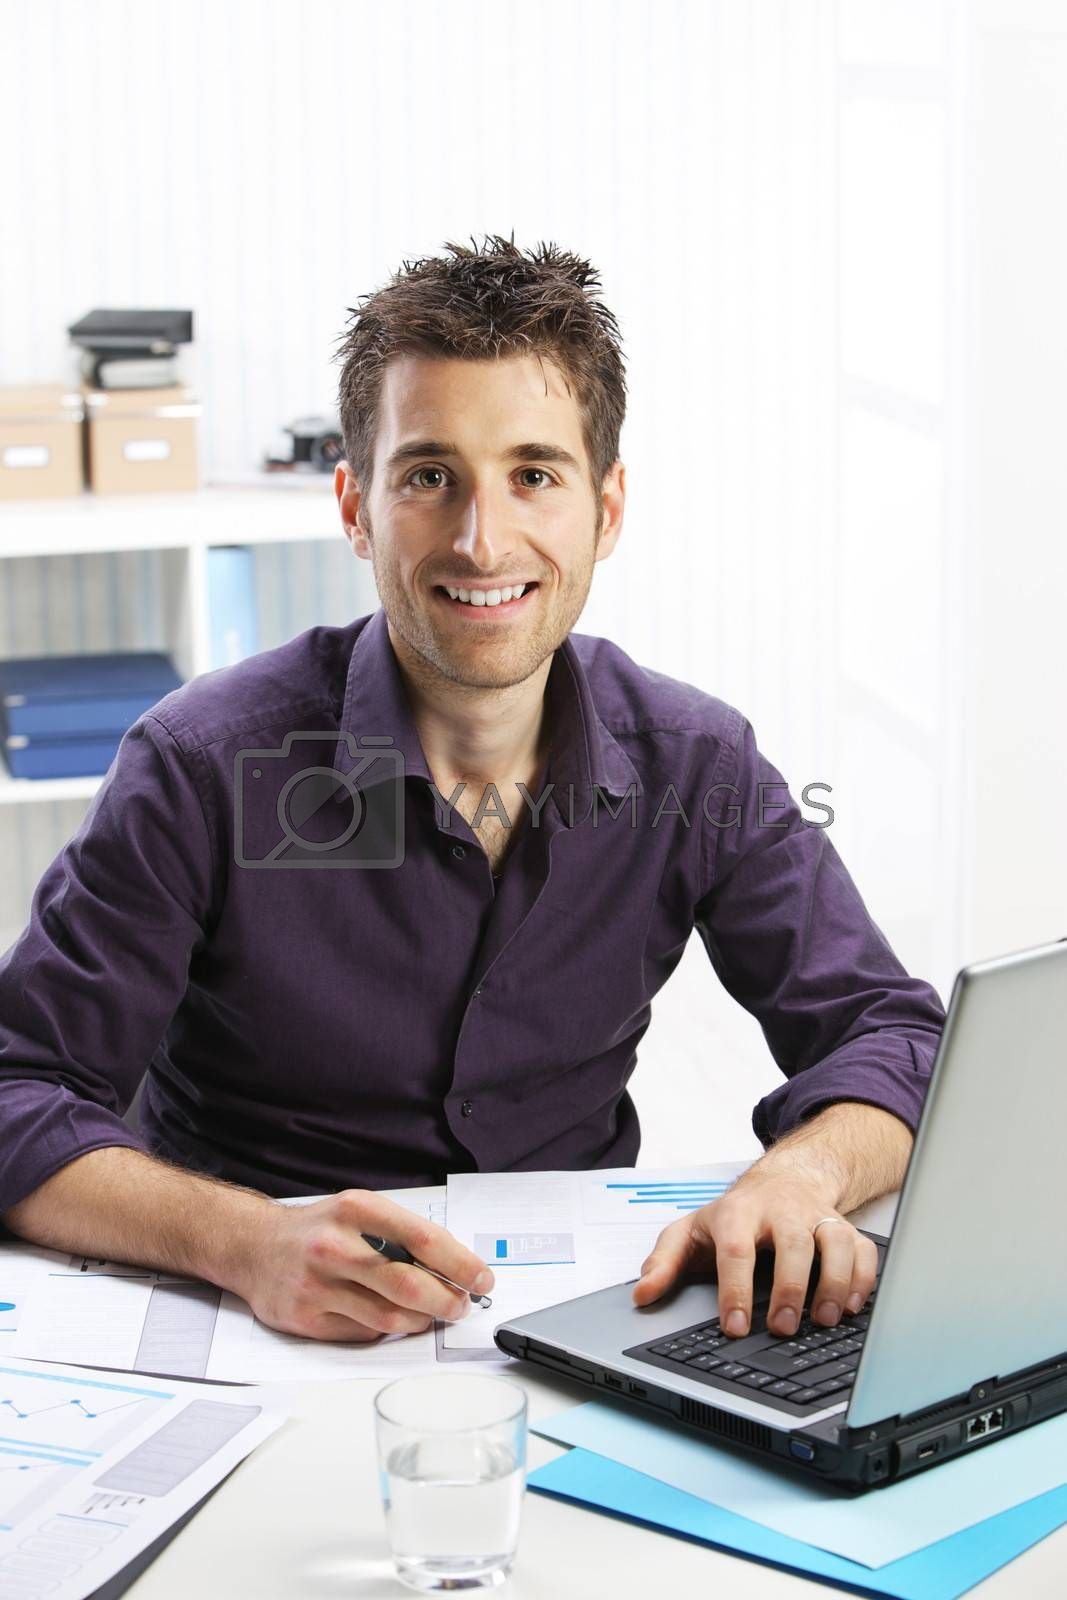 Young businessman working on laptop, looking at camera, smiling